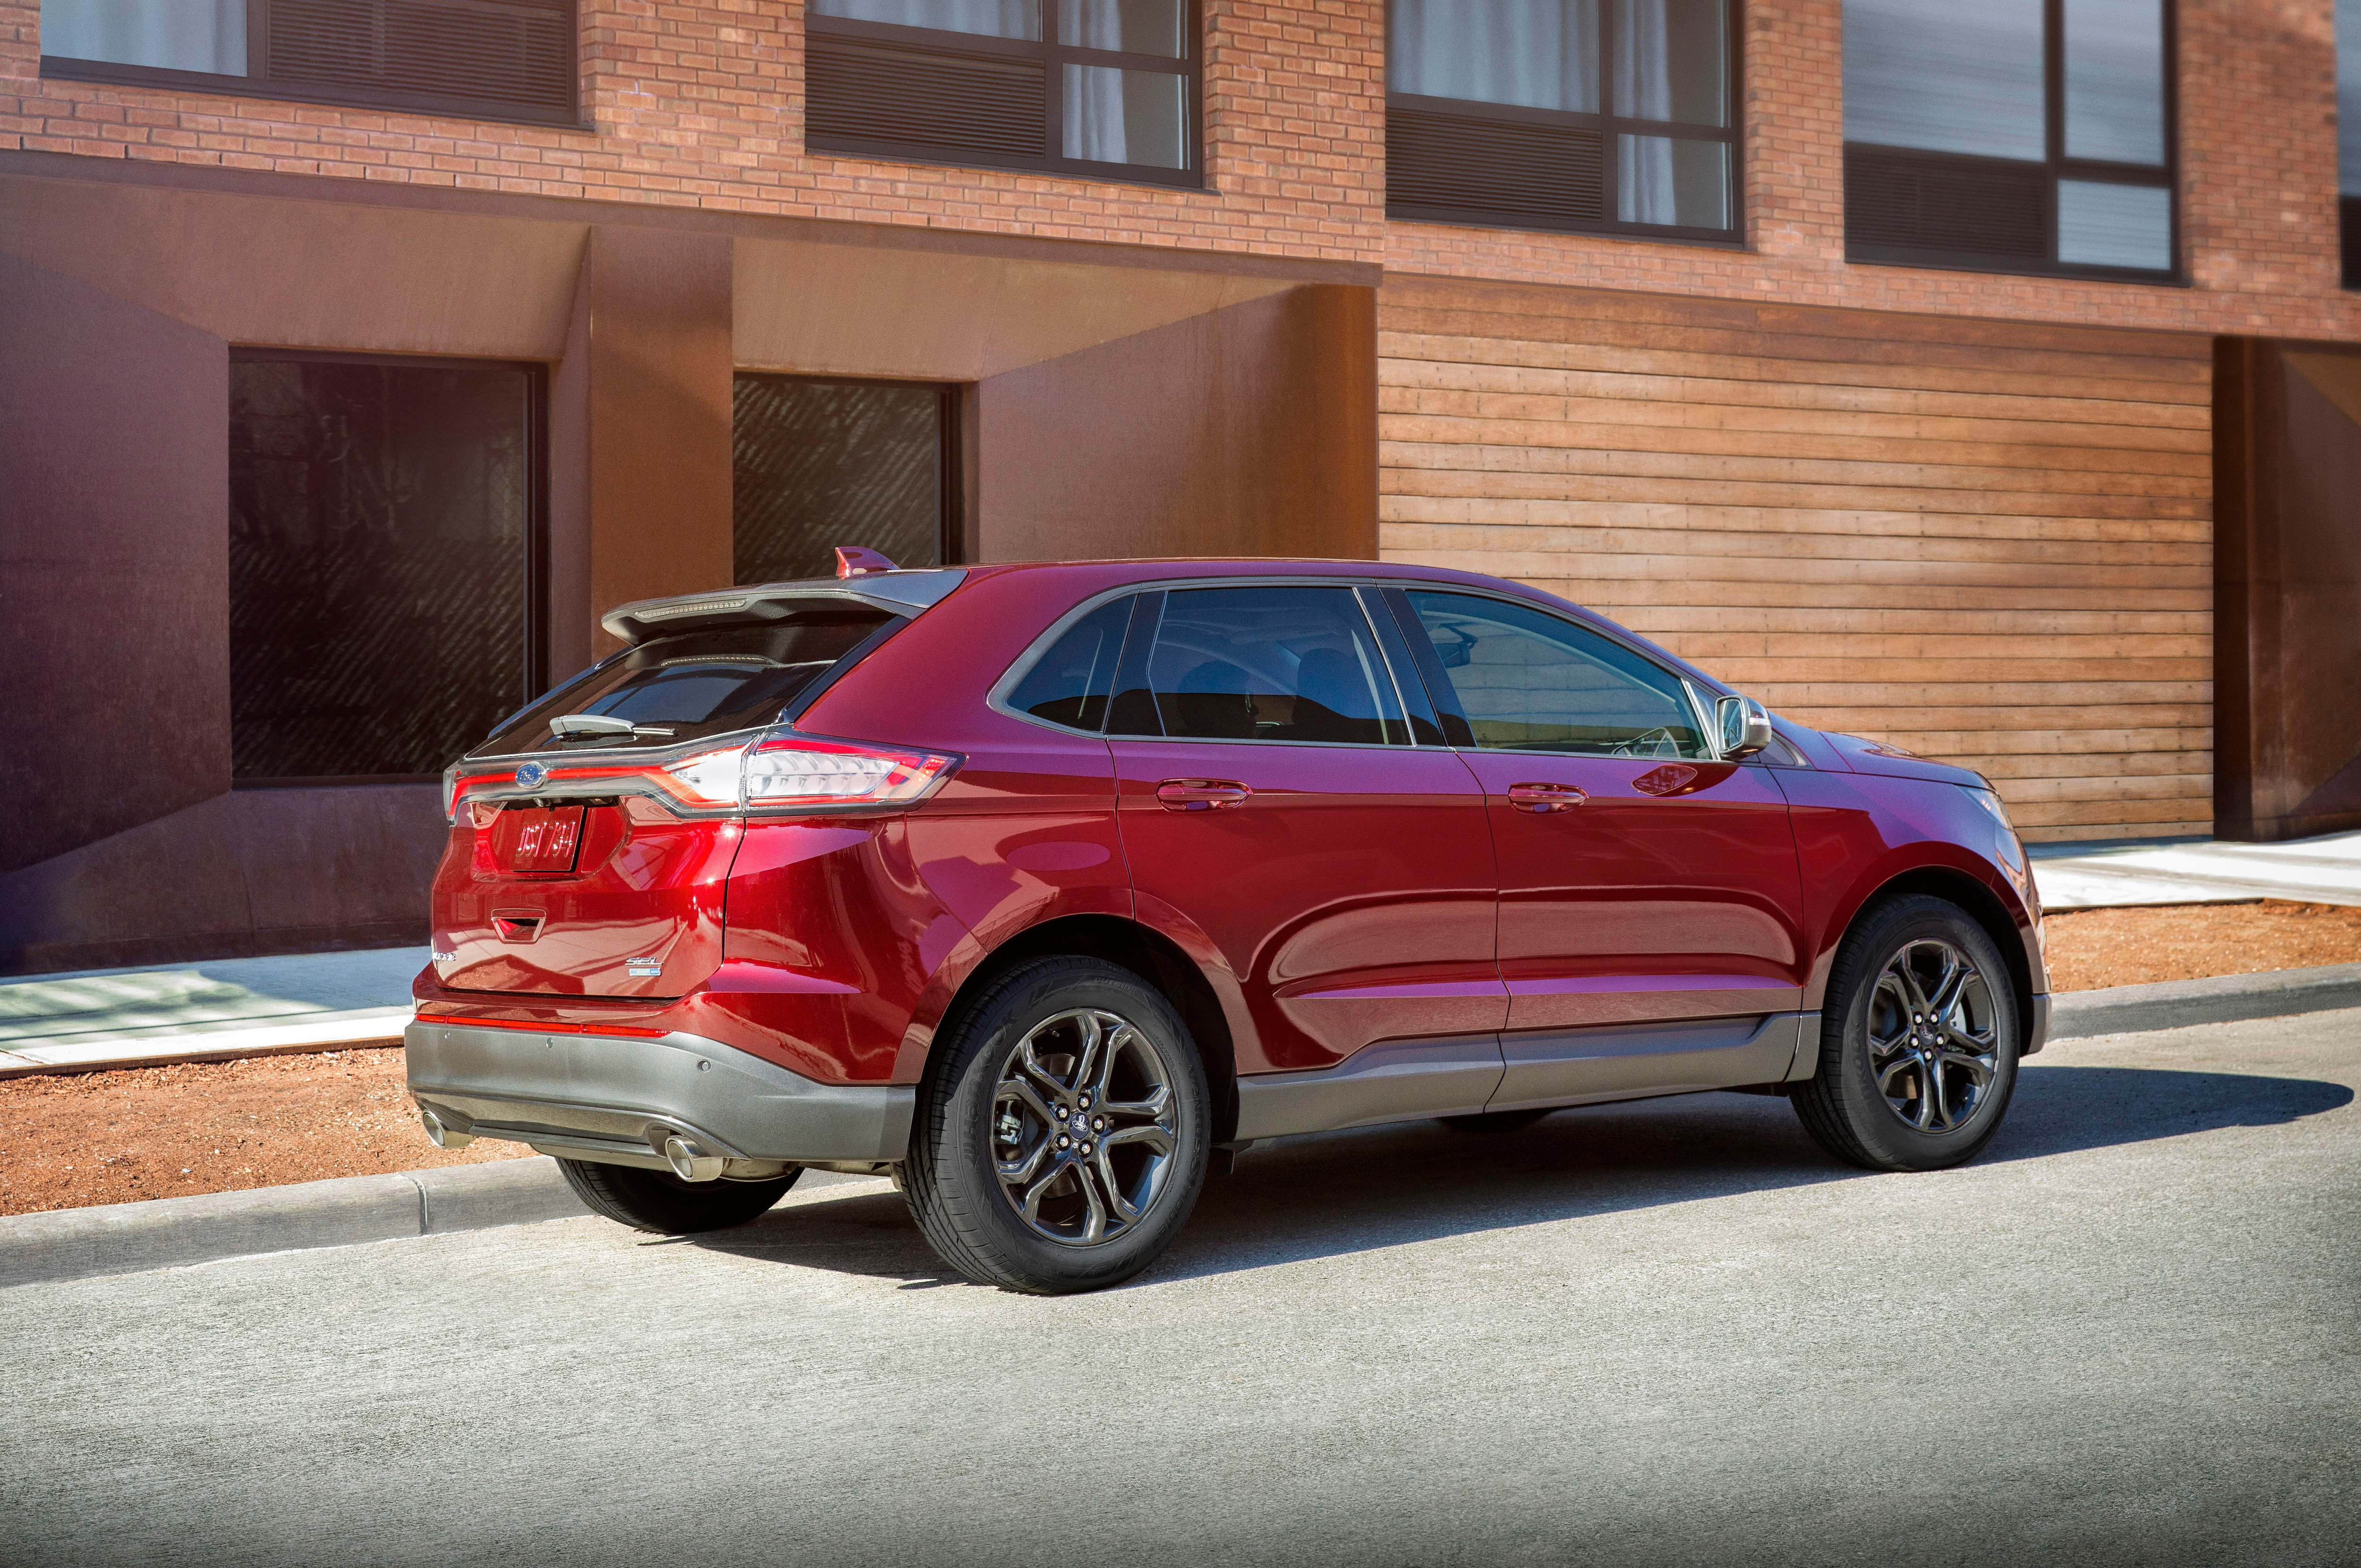 2017 Ford Edge Sel Specs >> 2018 Ford Edge Adds SEL Sport Appearance Package | Automobile Magazine